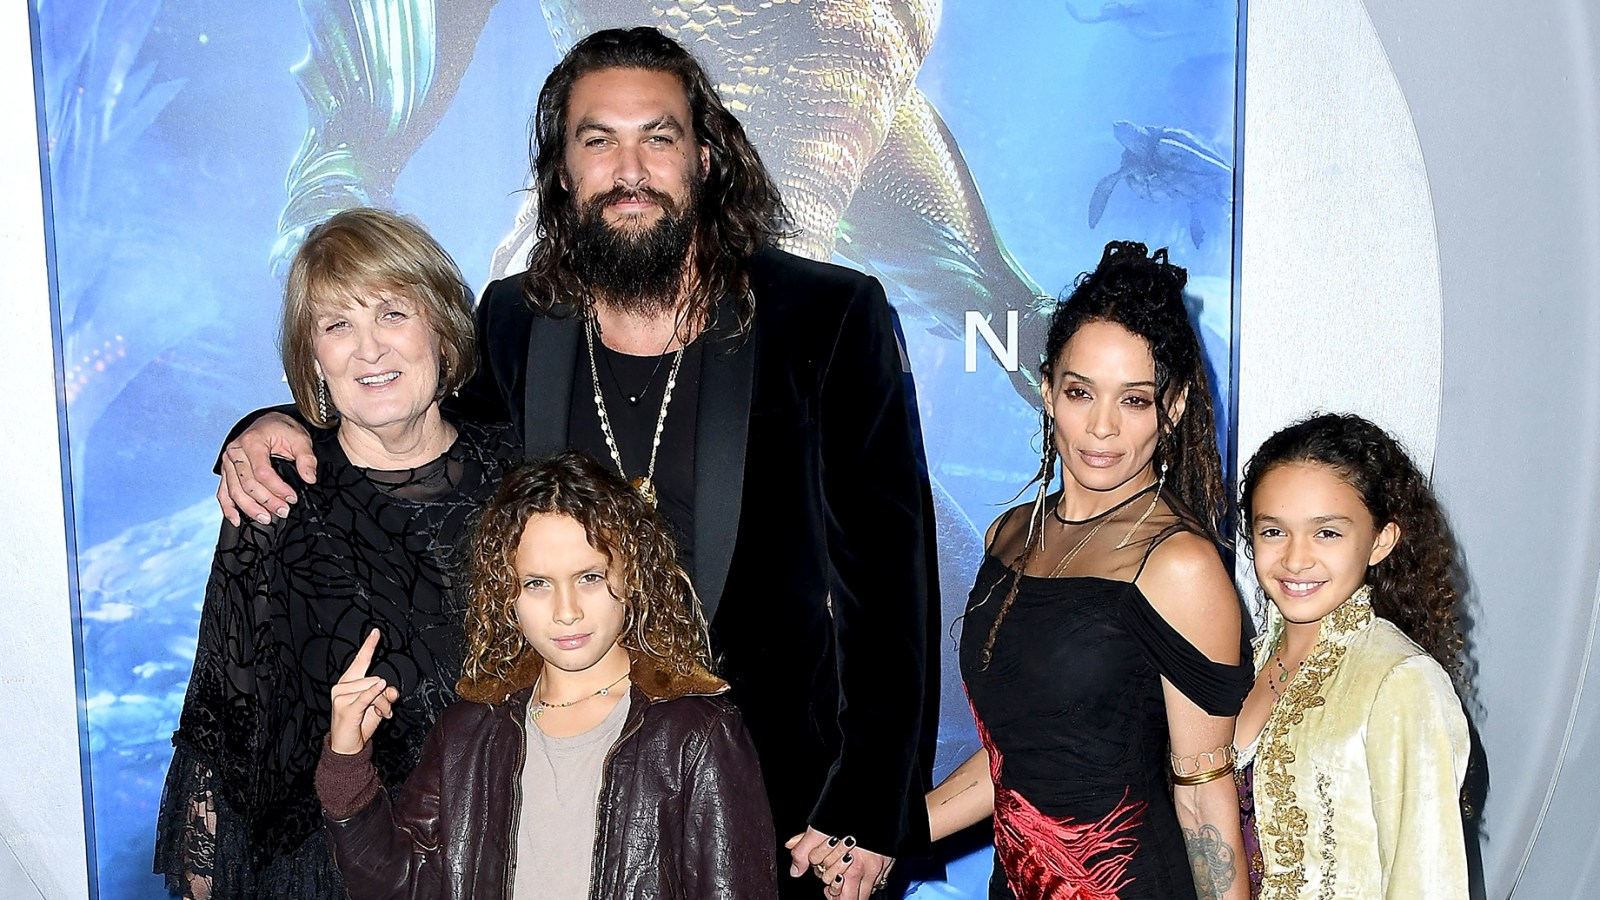 How many kids do Jason Momoa and Lisa Bonet have? Who Is Jason Momoa's Wife